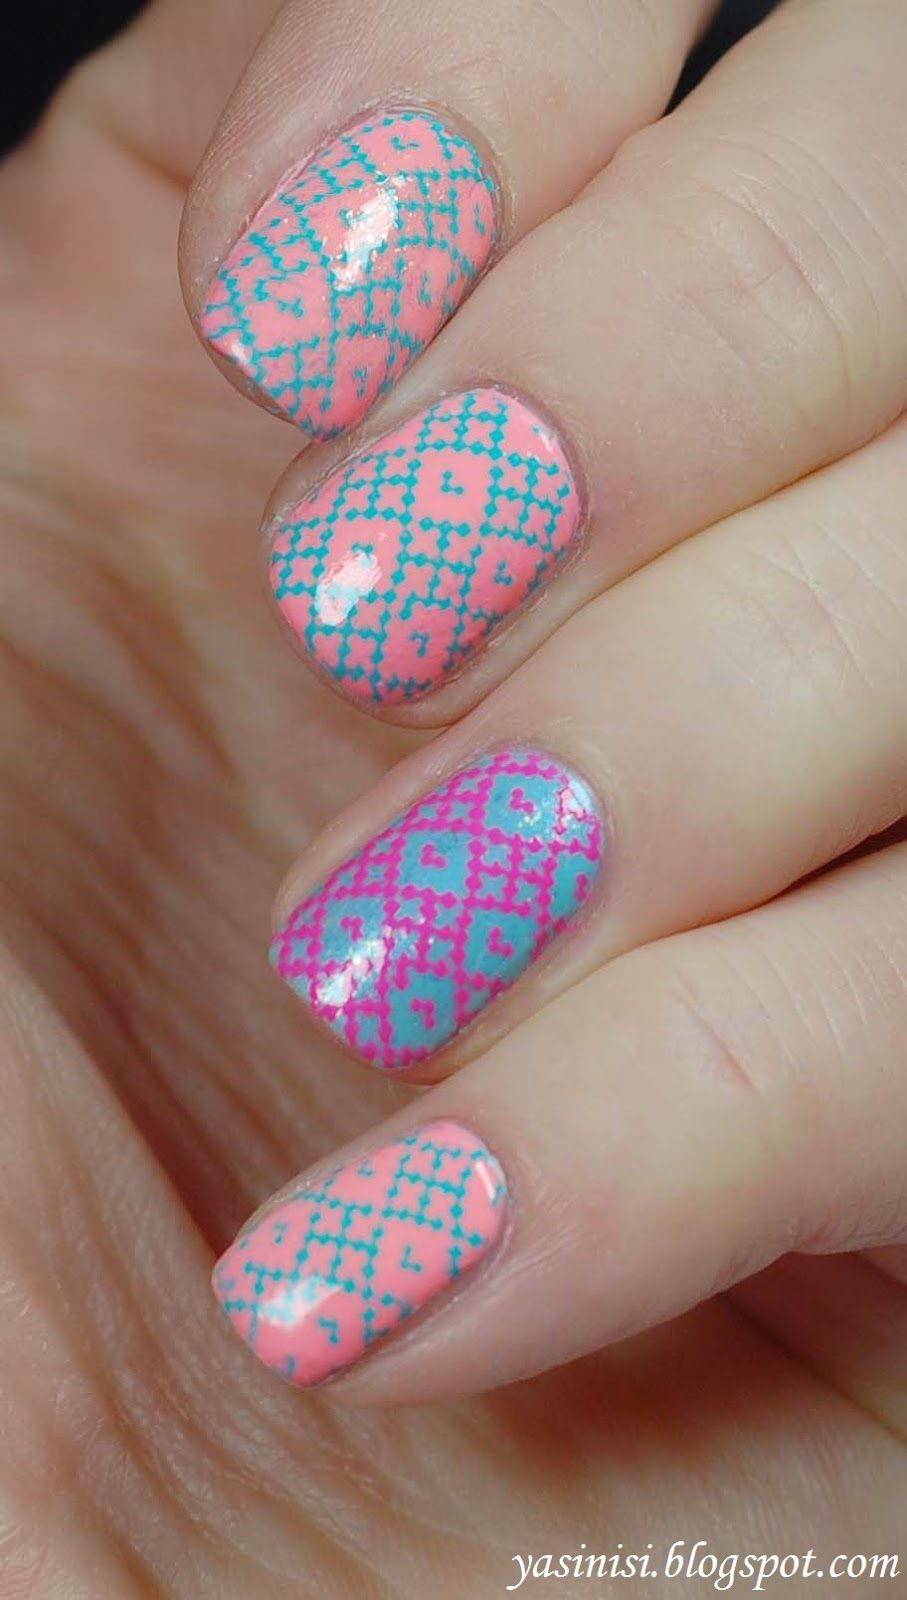 UberChic Beauty Stamping plates - set 1 - REVIEW / RECENZJA Wpw! Perfect spring colored nails! Perfect nail stamps from Uber Chic Beauty Stamps! These are amazing for spring, prom, summer nails! Love nail art! So simple to do and they look great! Salon style at home! Can't wait to do this!